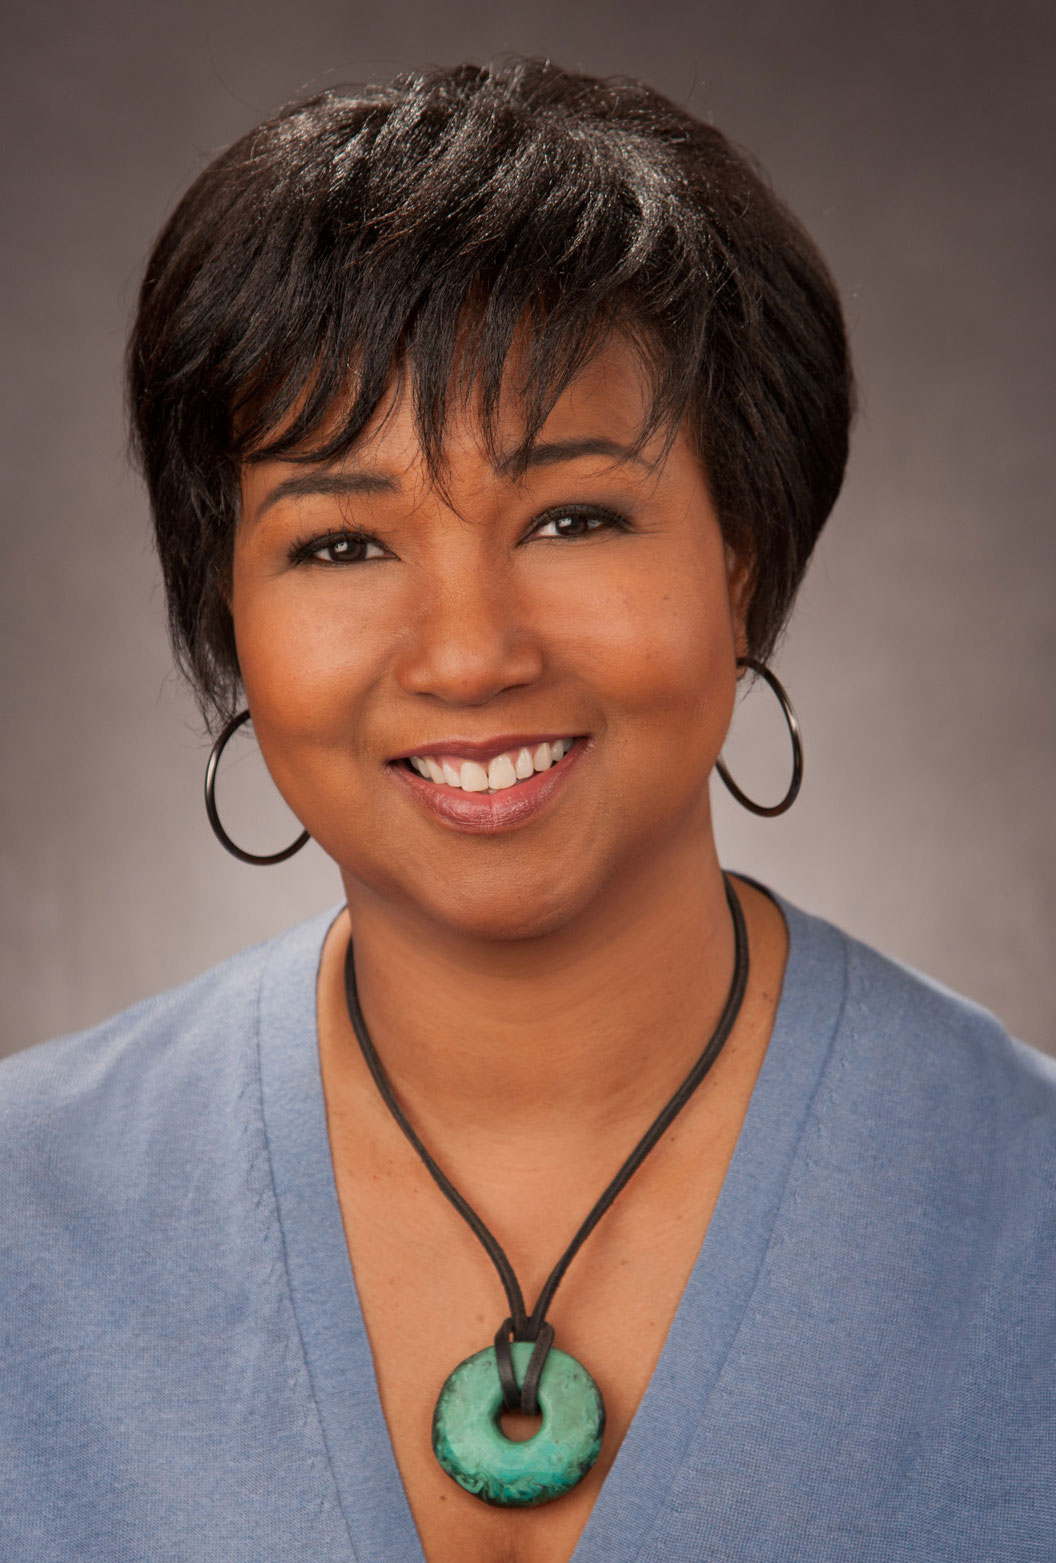 UNT'S Distinguished Lecture Series welcomes Dr. Mae Jemison Feb. 22